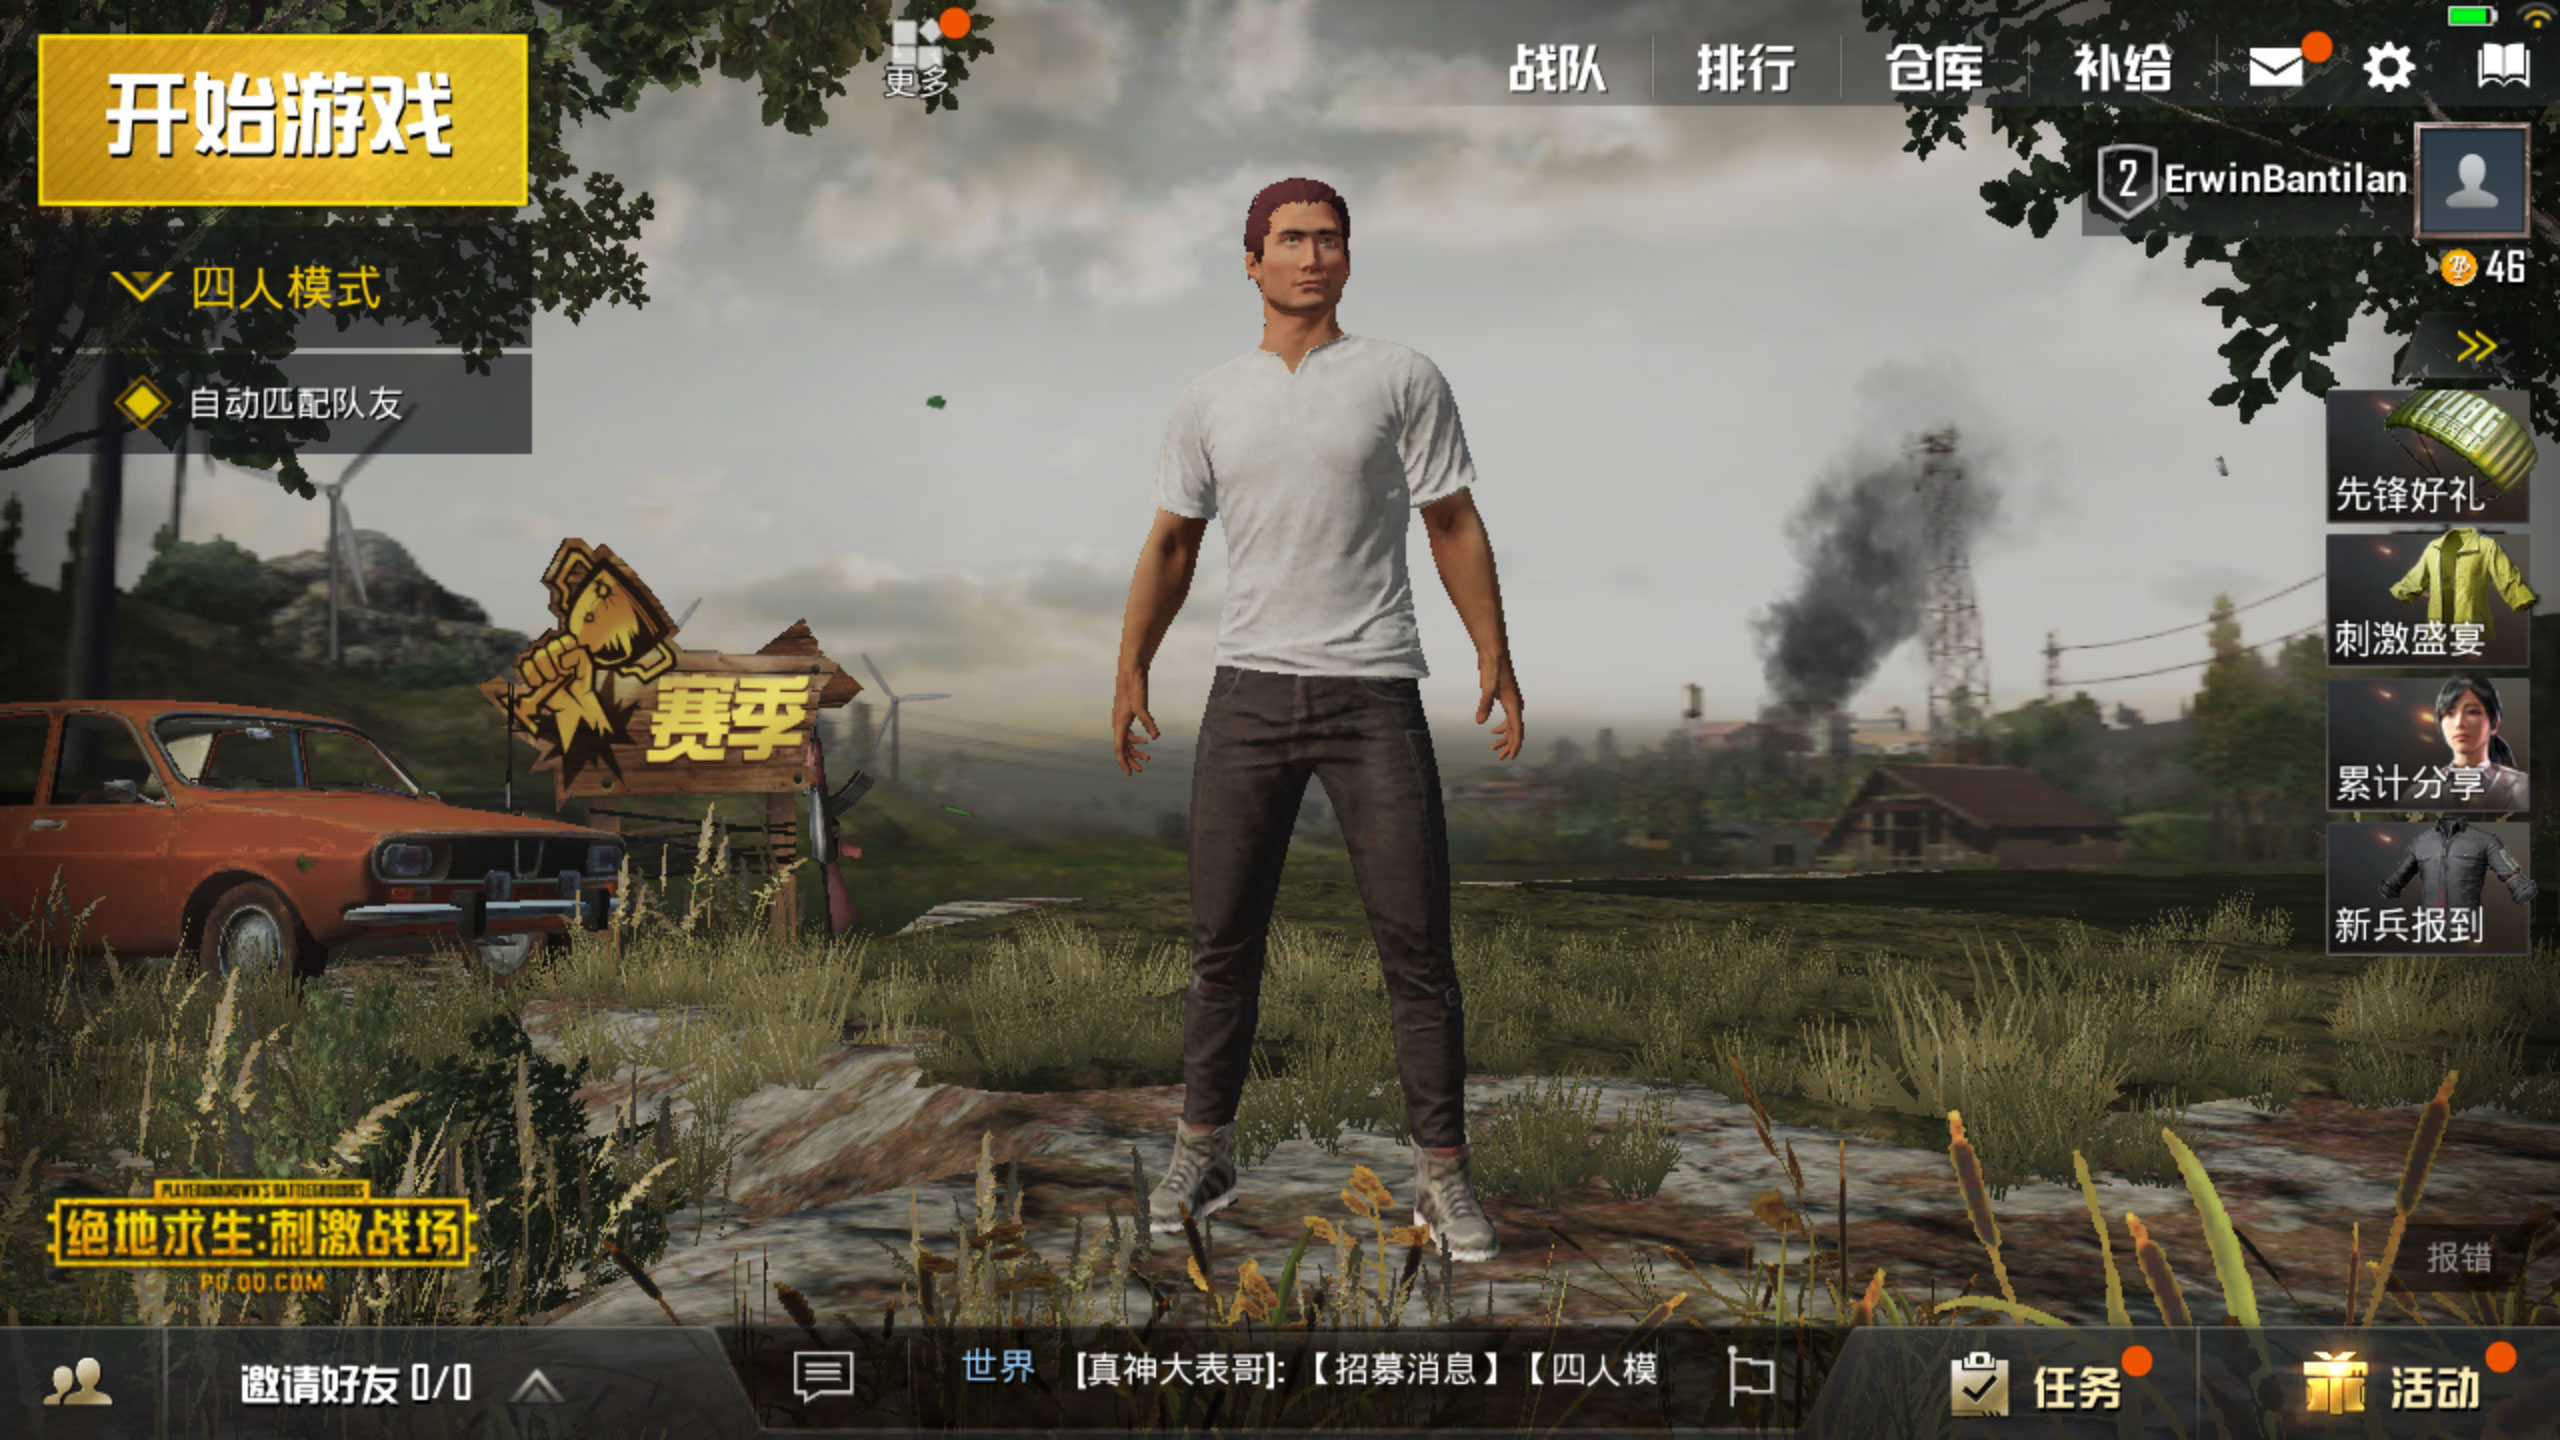 Download Pubg Mobile: How To Download PUBG Mobile Open Beta In Android And IOS